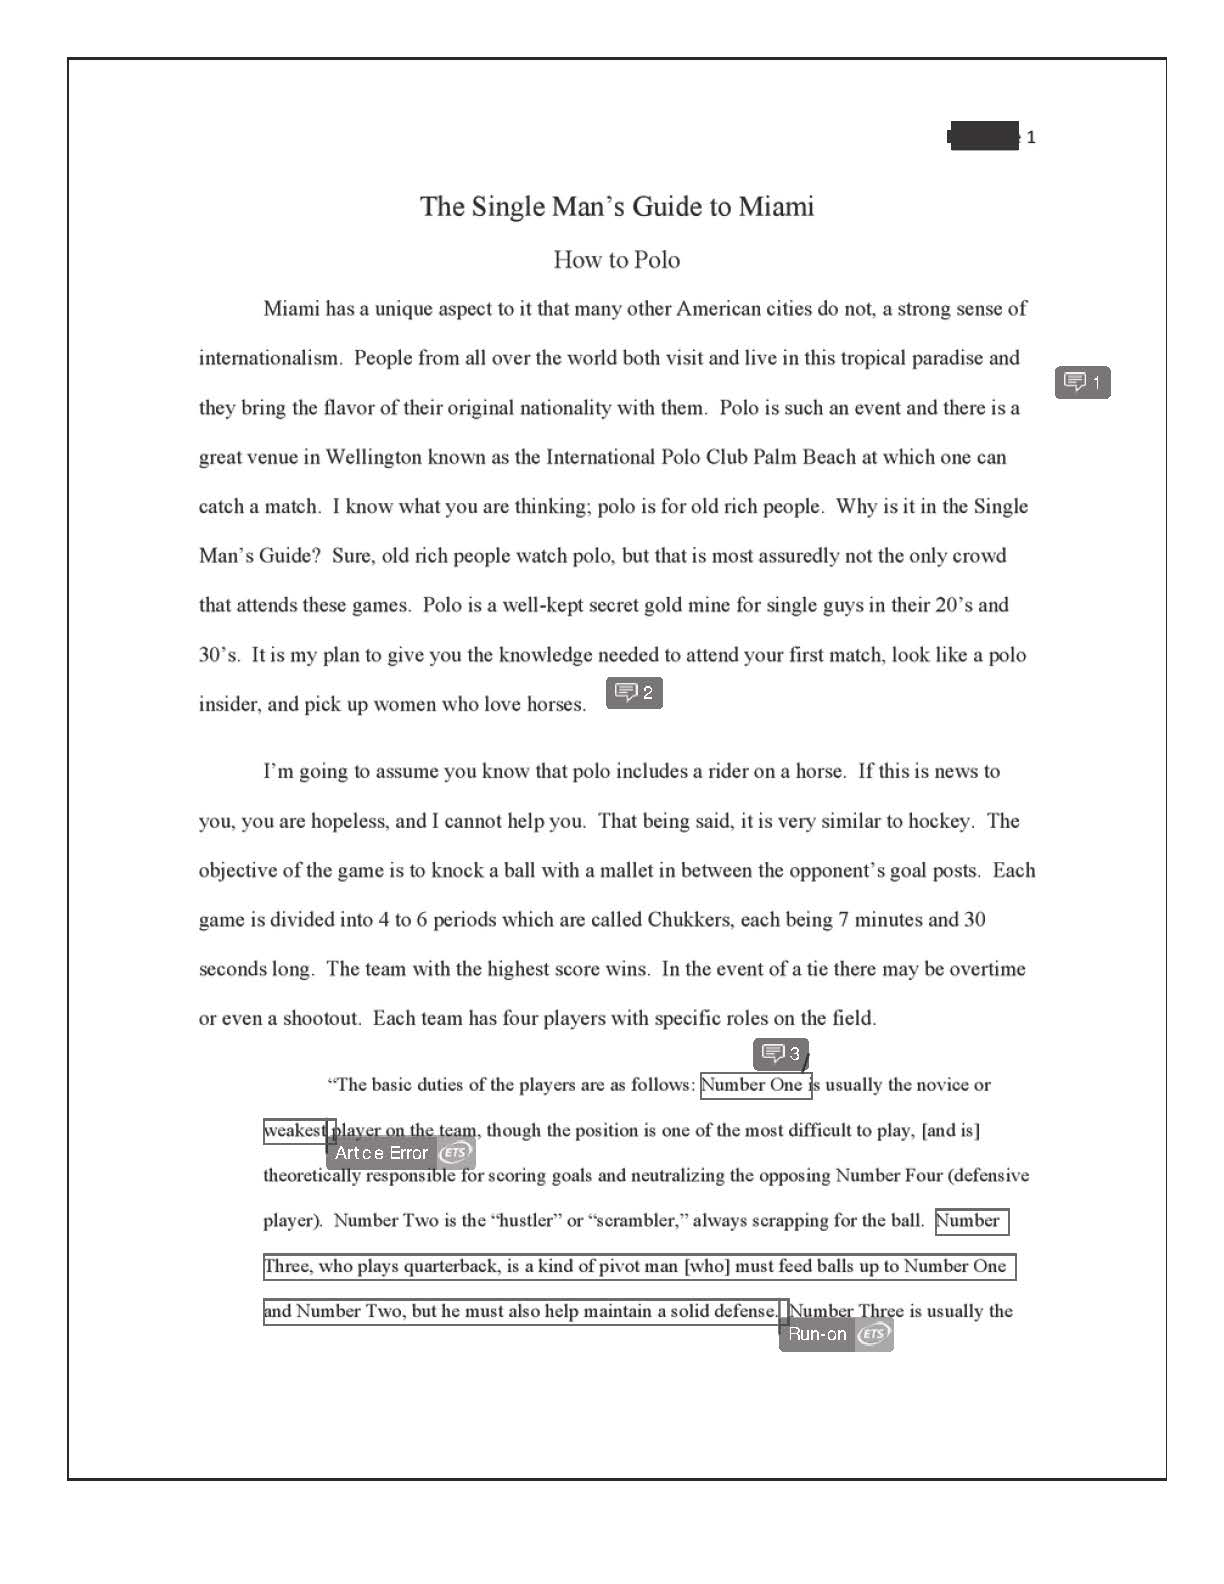 005 Informative Essay Topics Essays Sample Funny Argumentative For Middle School Final How To Polo Redacted P College Students Hilarious Good Remarkable Expository Secondary 4th Grade 5th Full